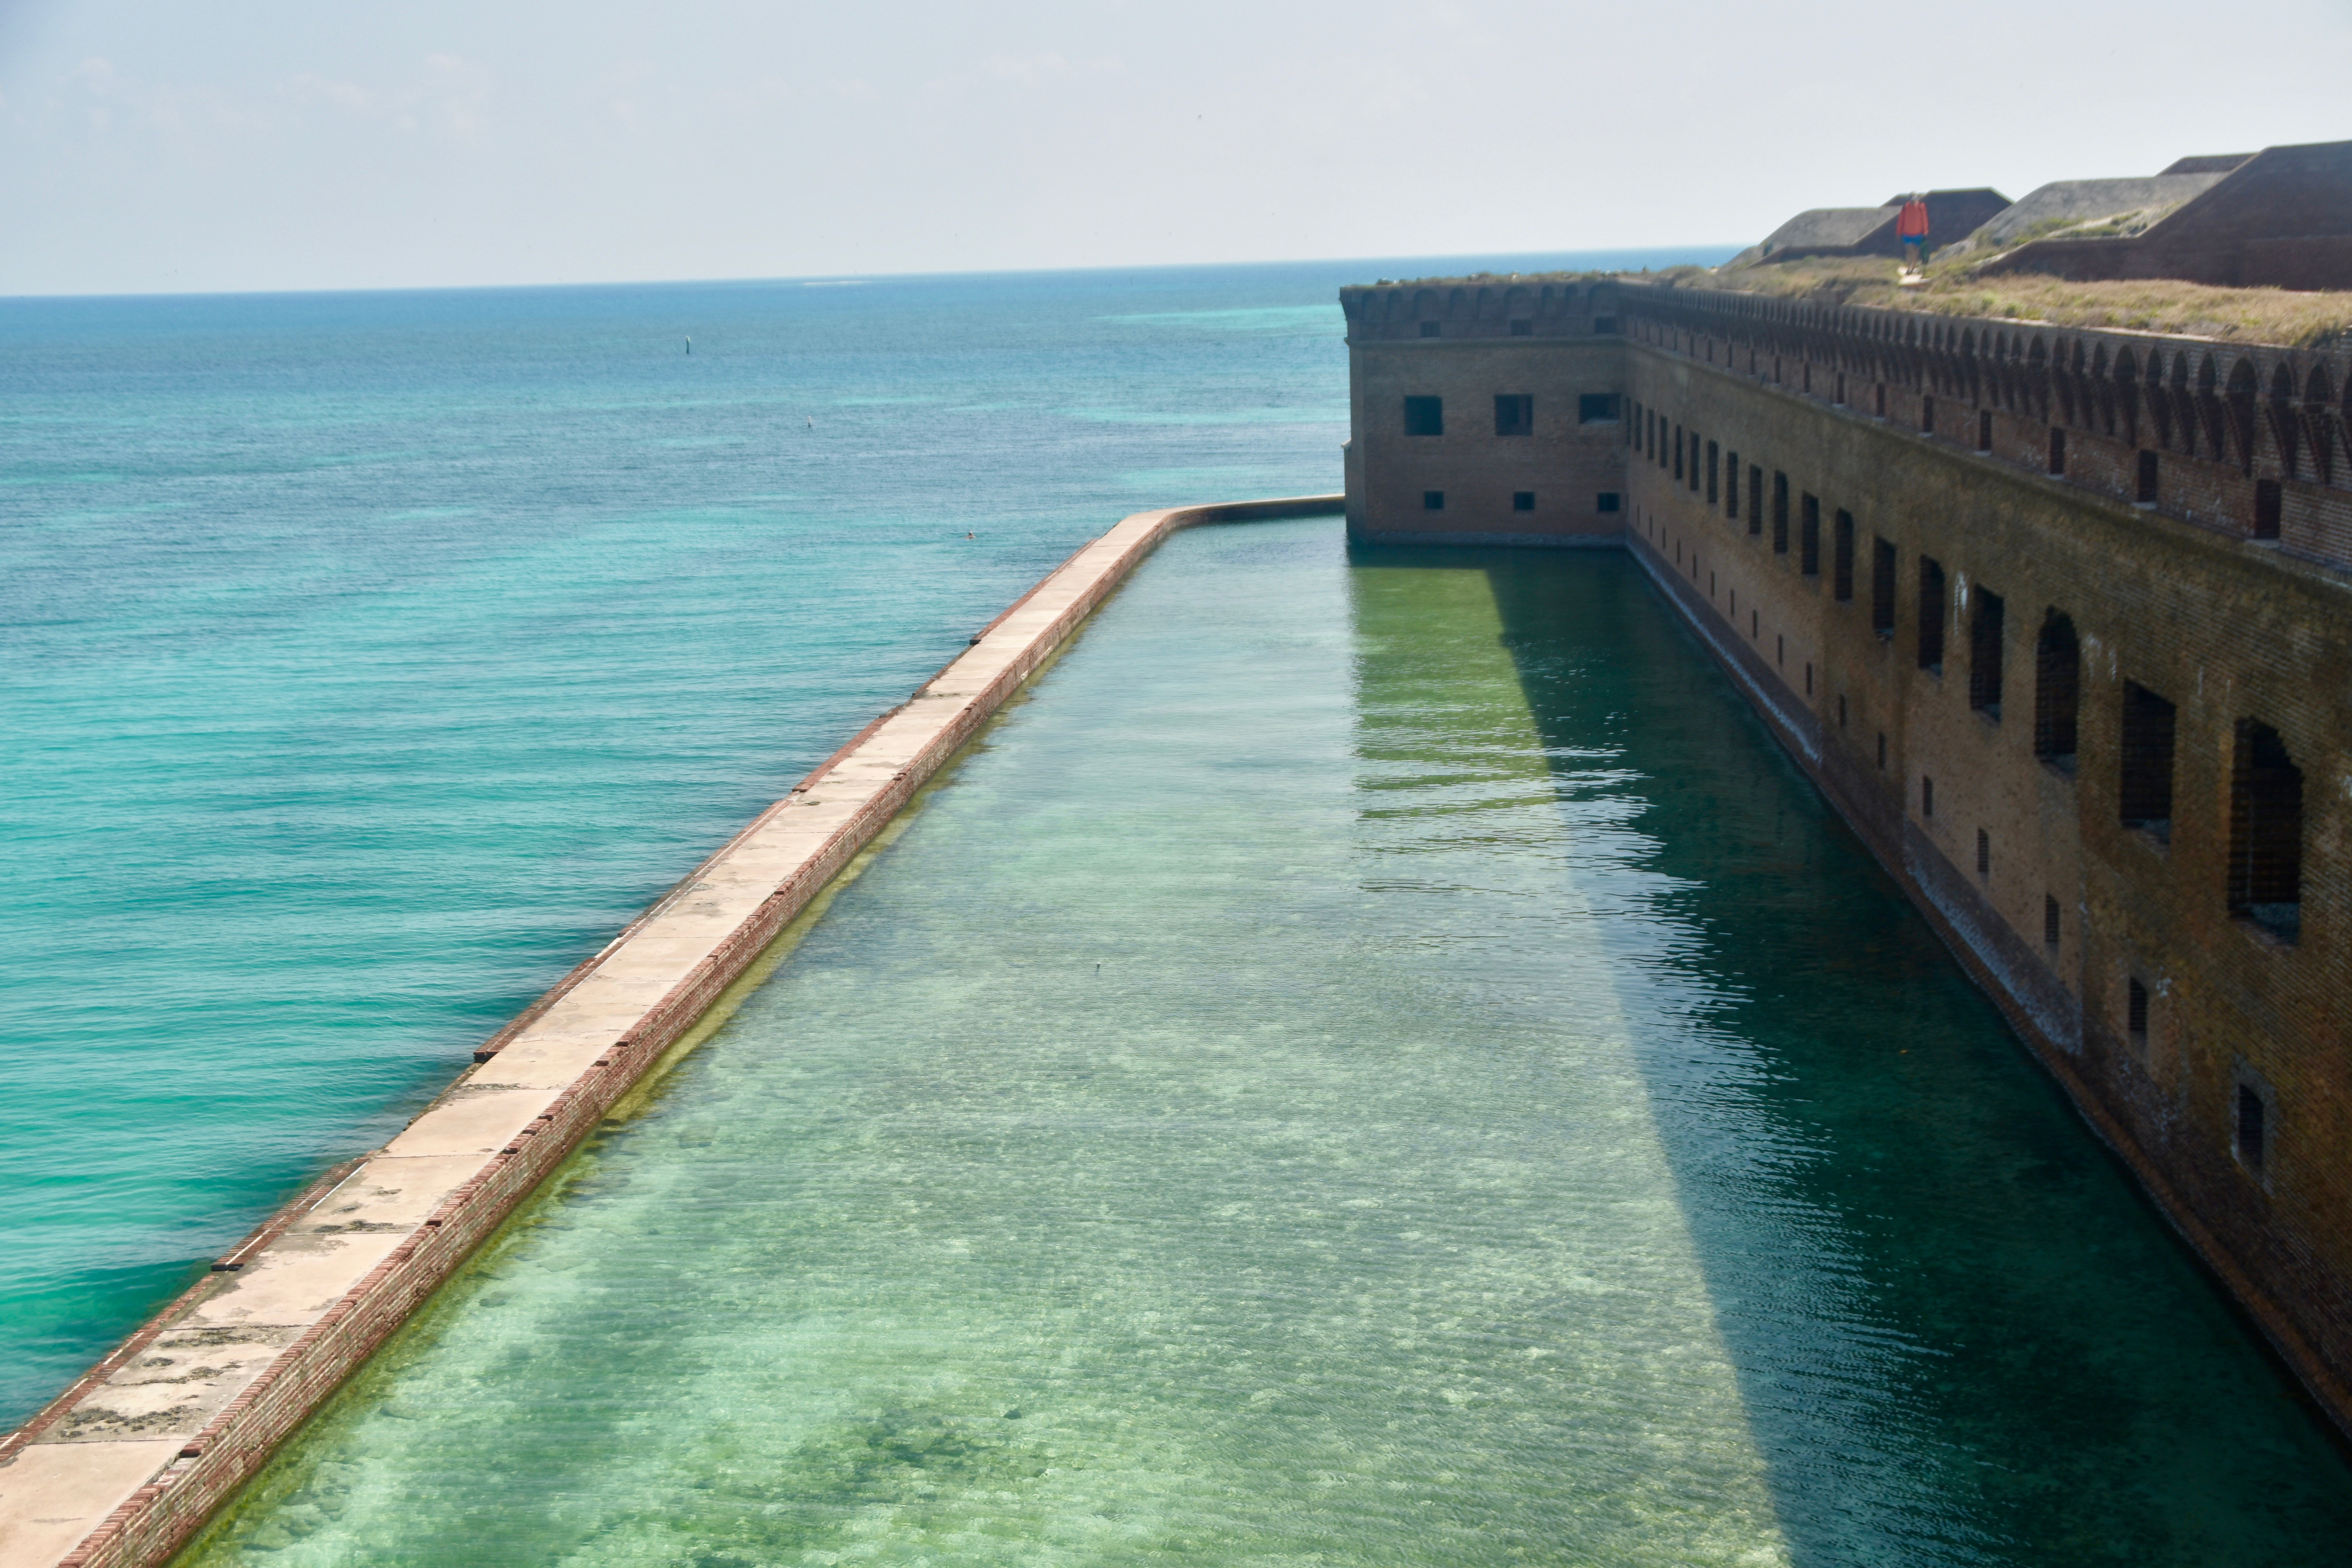 The Moat From the Top, Dry Tortugas